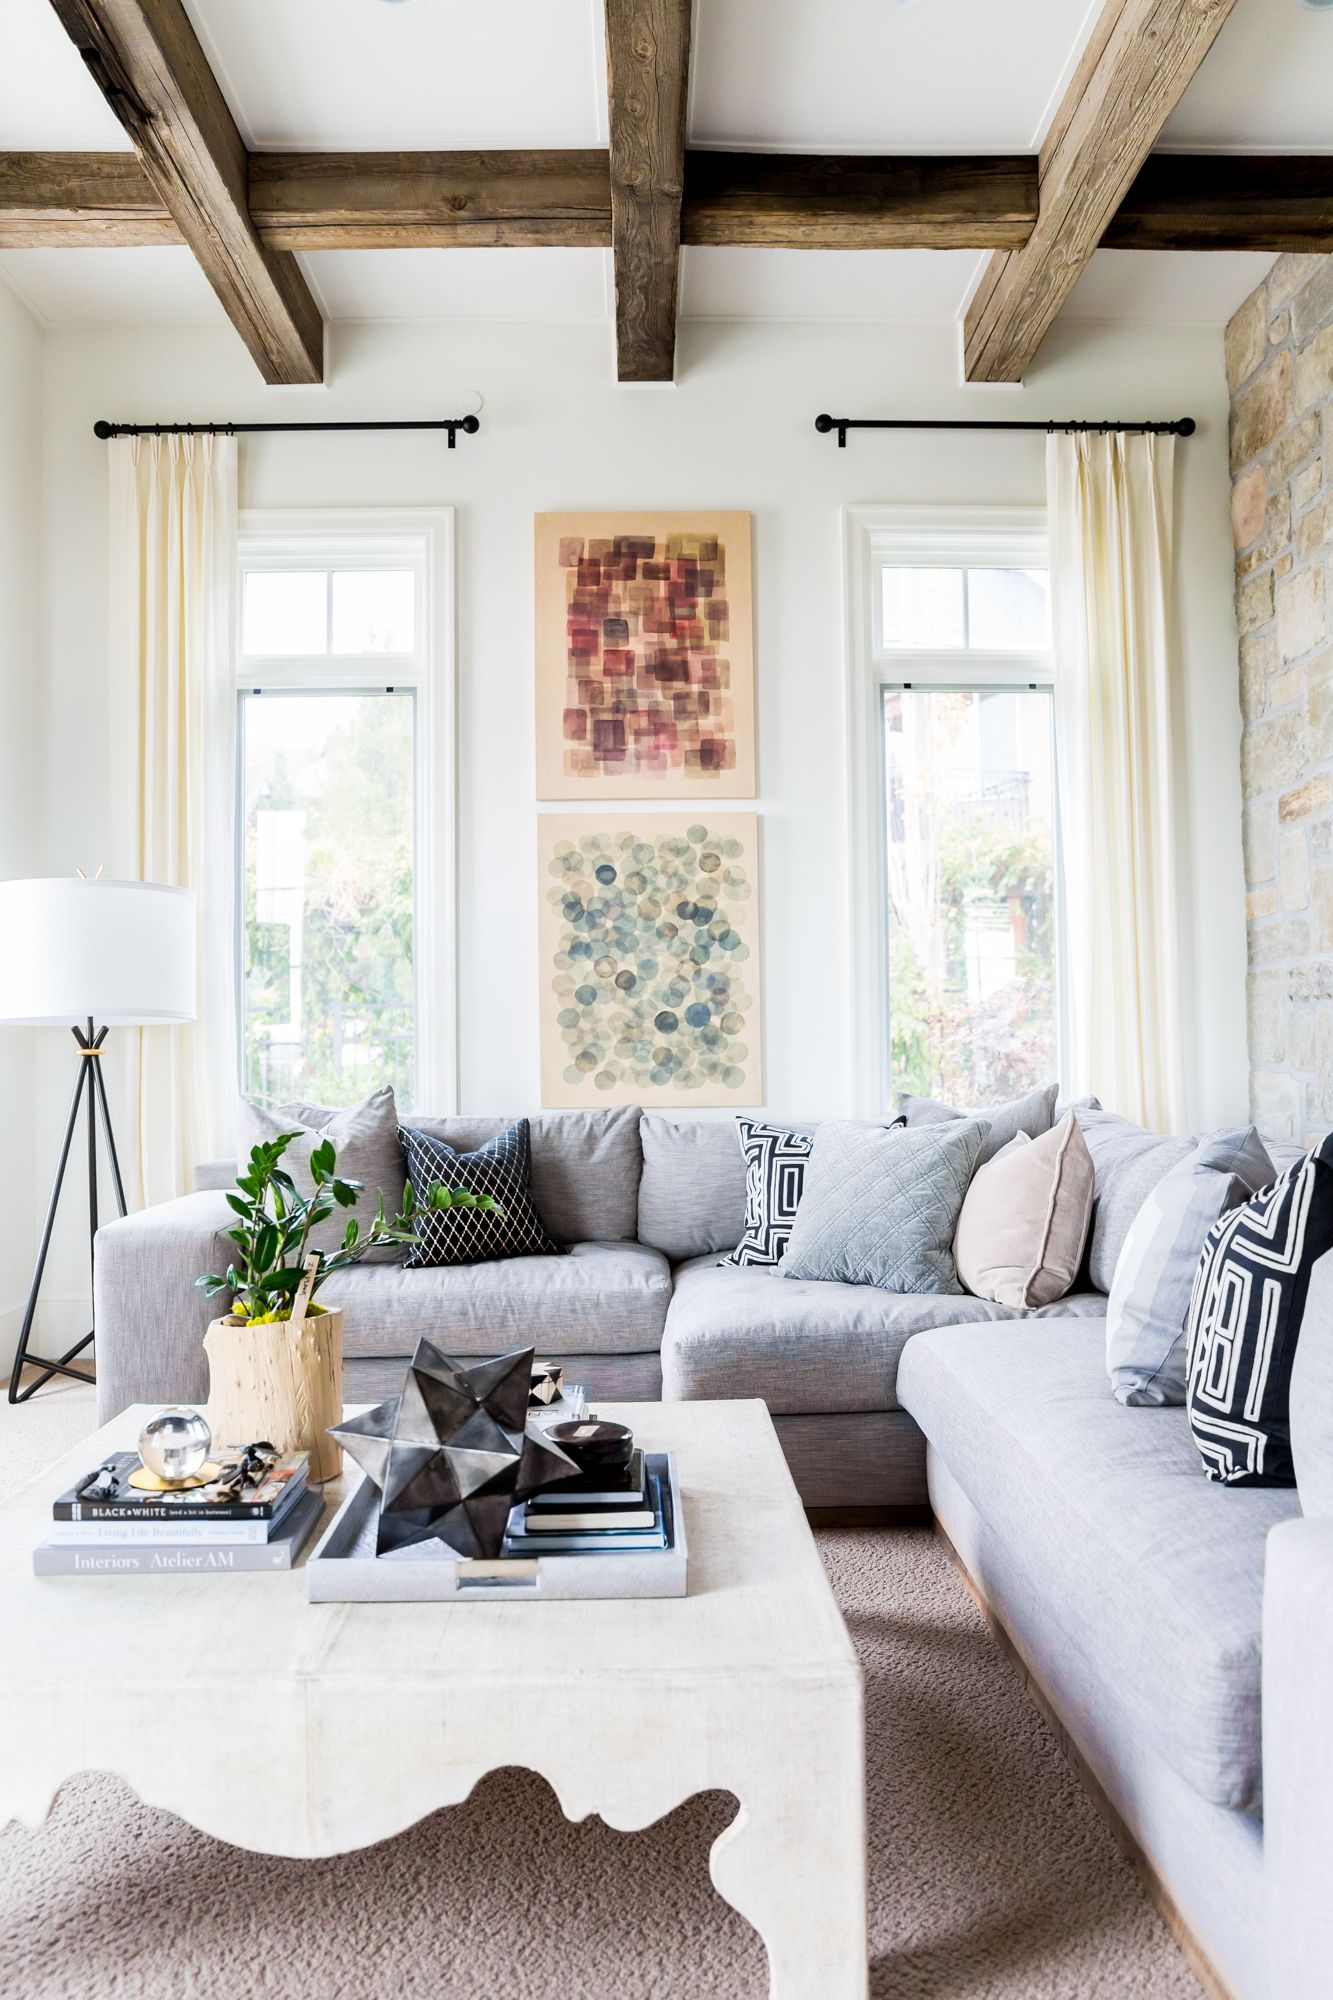 Cosy living room design with wooden beamed ceilings | Liv Design ...